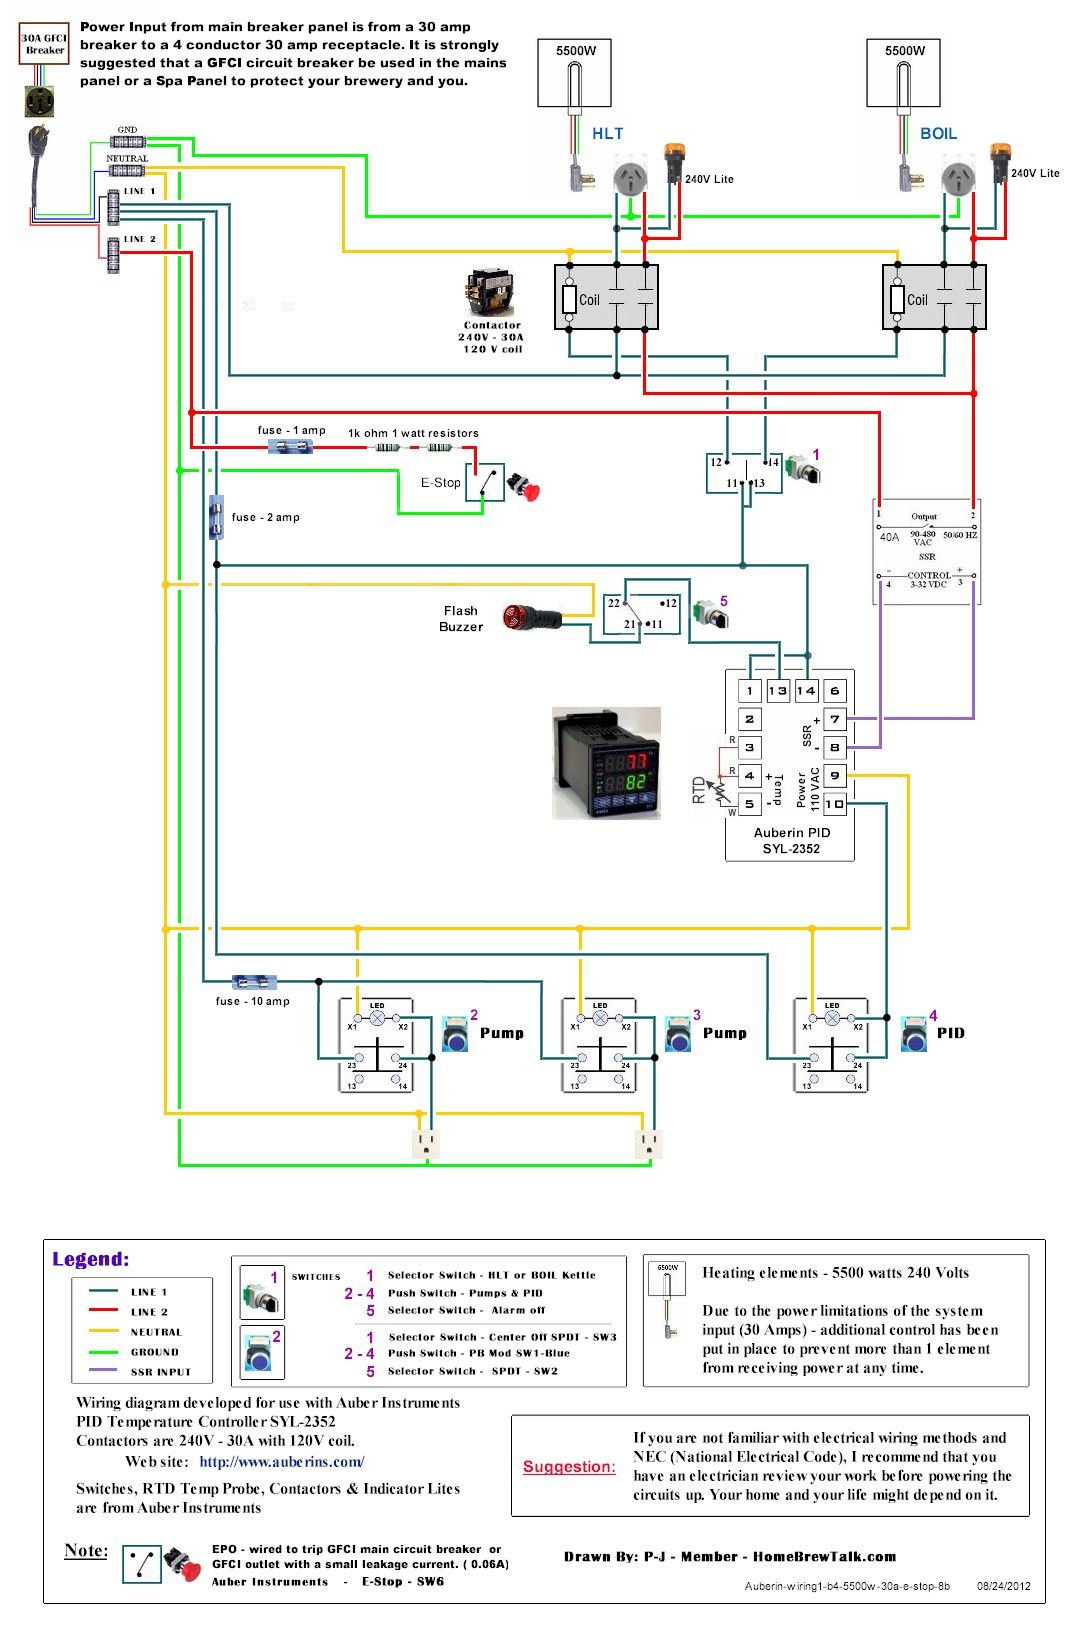 220v 30a wiring diagram help page 2 home brew forums brewery 220v 30a wiring diagram [ 1089 x 1631 Pixel ]